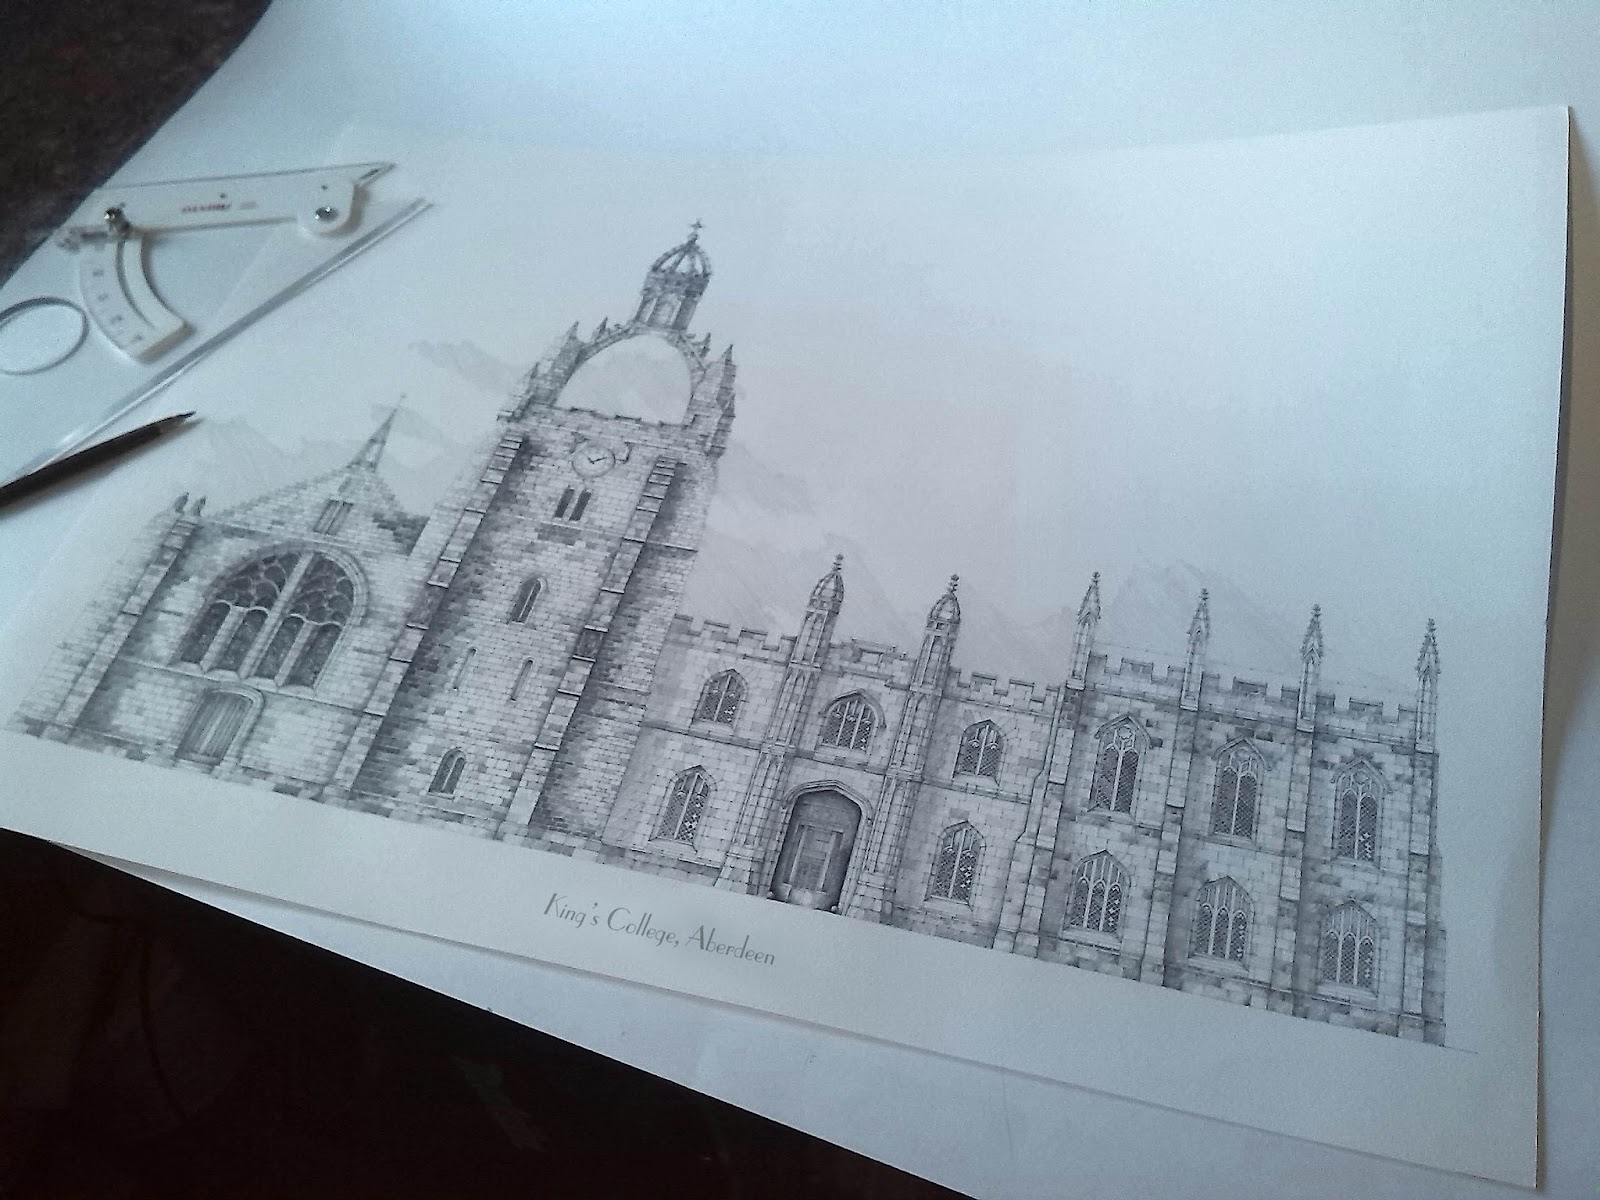 01-King-s-College-Aberdeen-Jamie-Cameron-Intricate-Architectural-Drawings-and-Illustrations-www-designstack-co